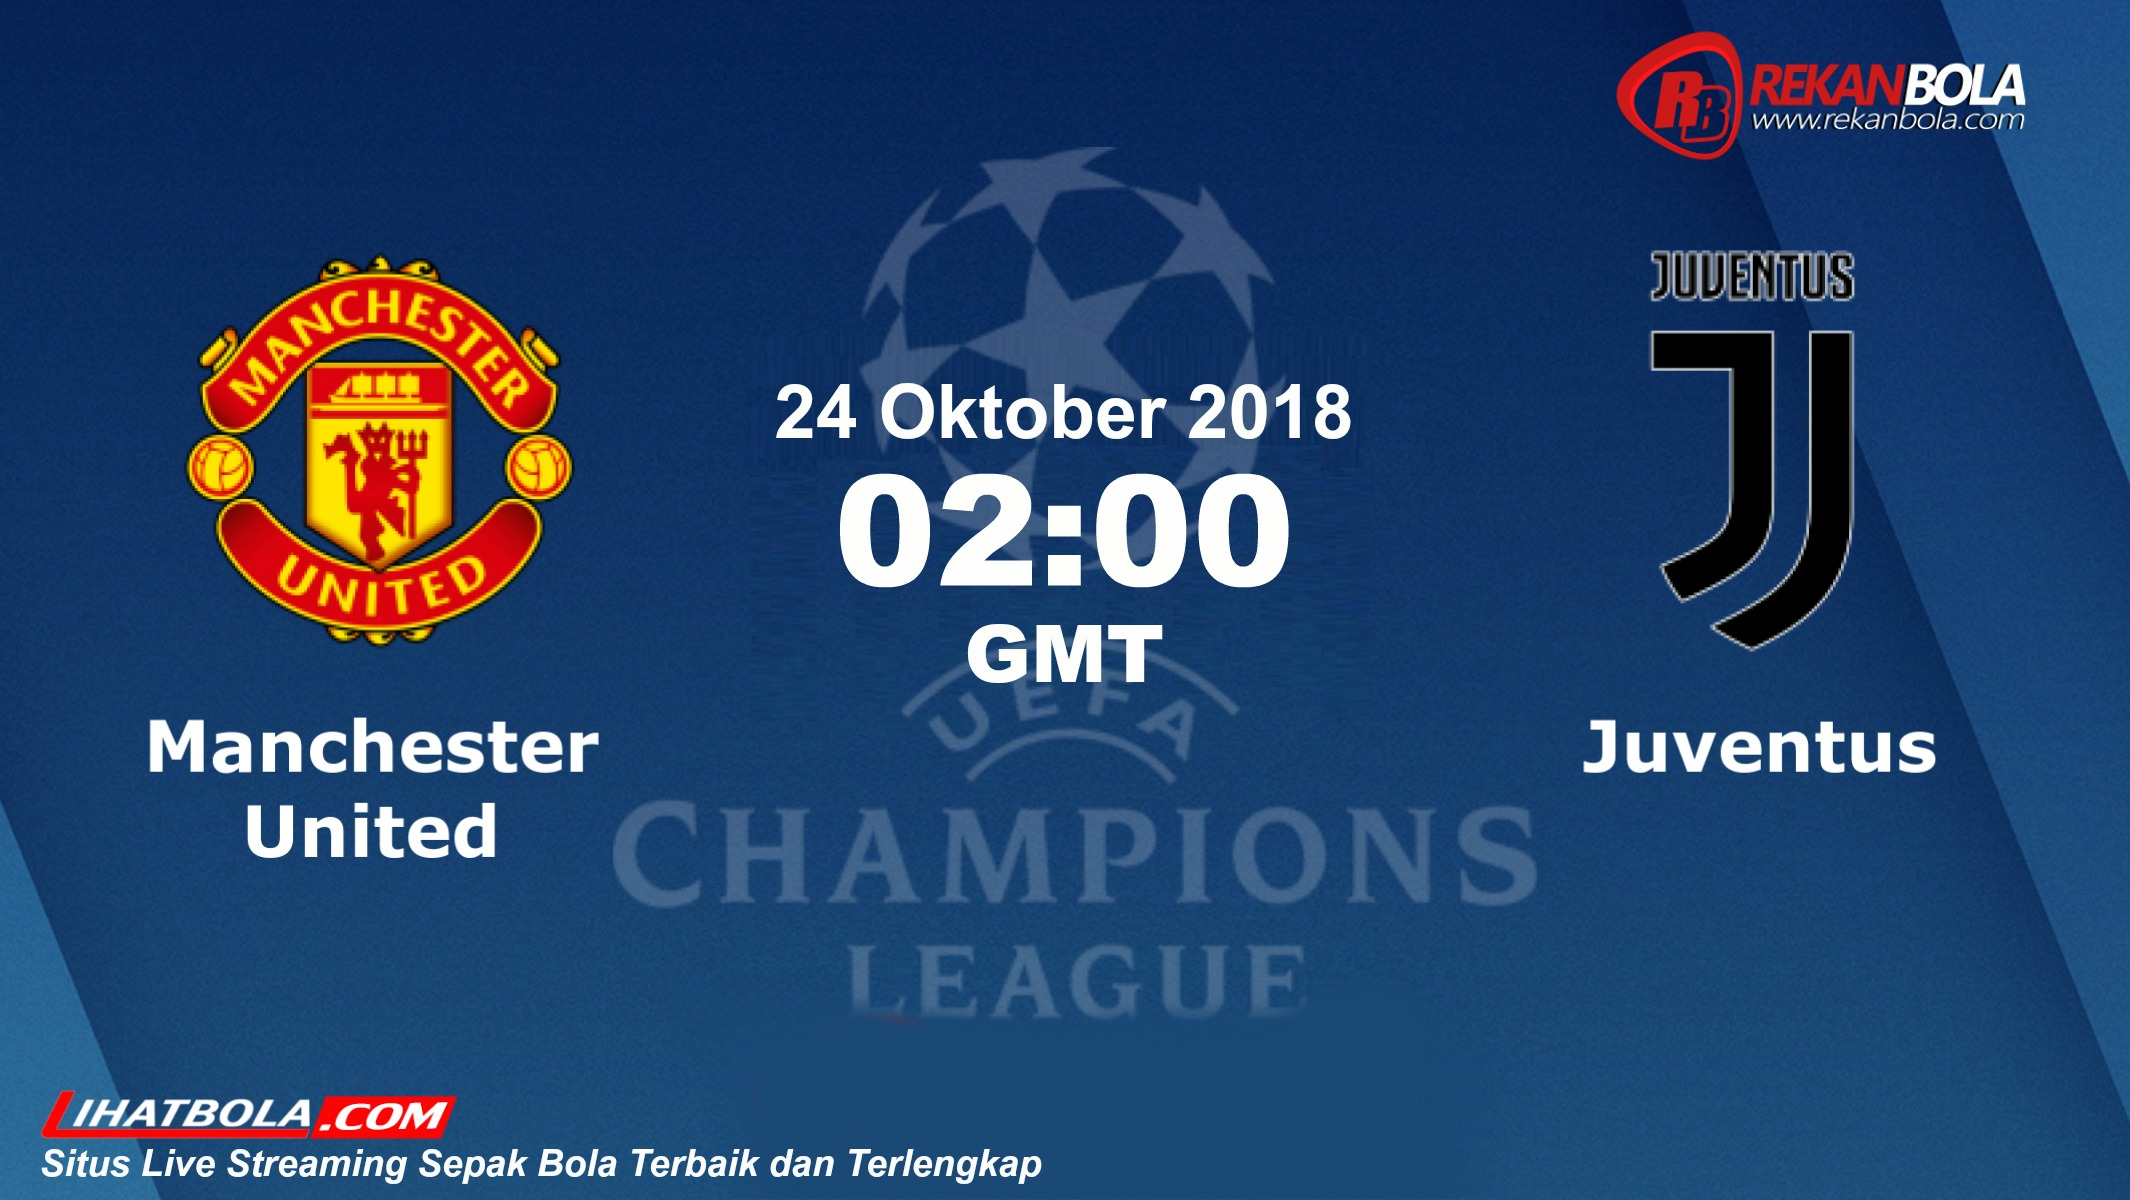 Nonton Siaran Live Streaming Man Utd Vs Juventus 24 Oktober 2018